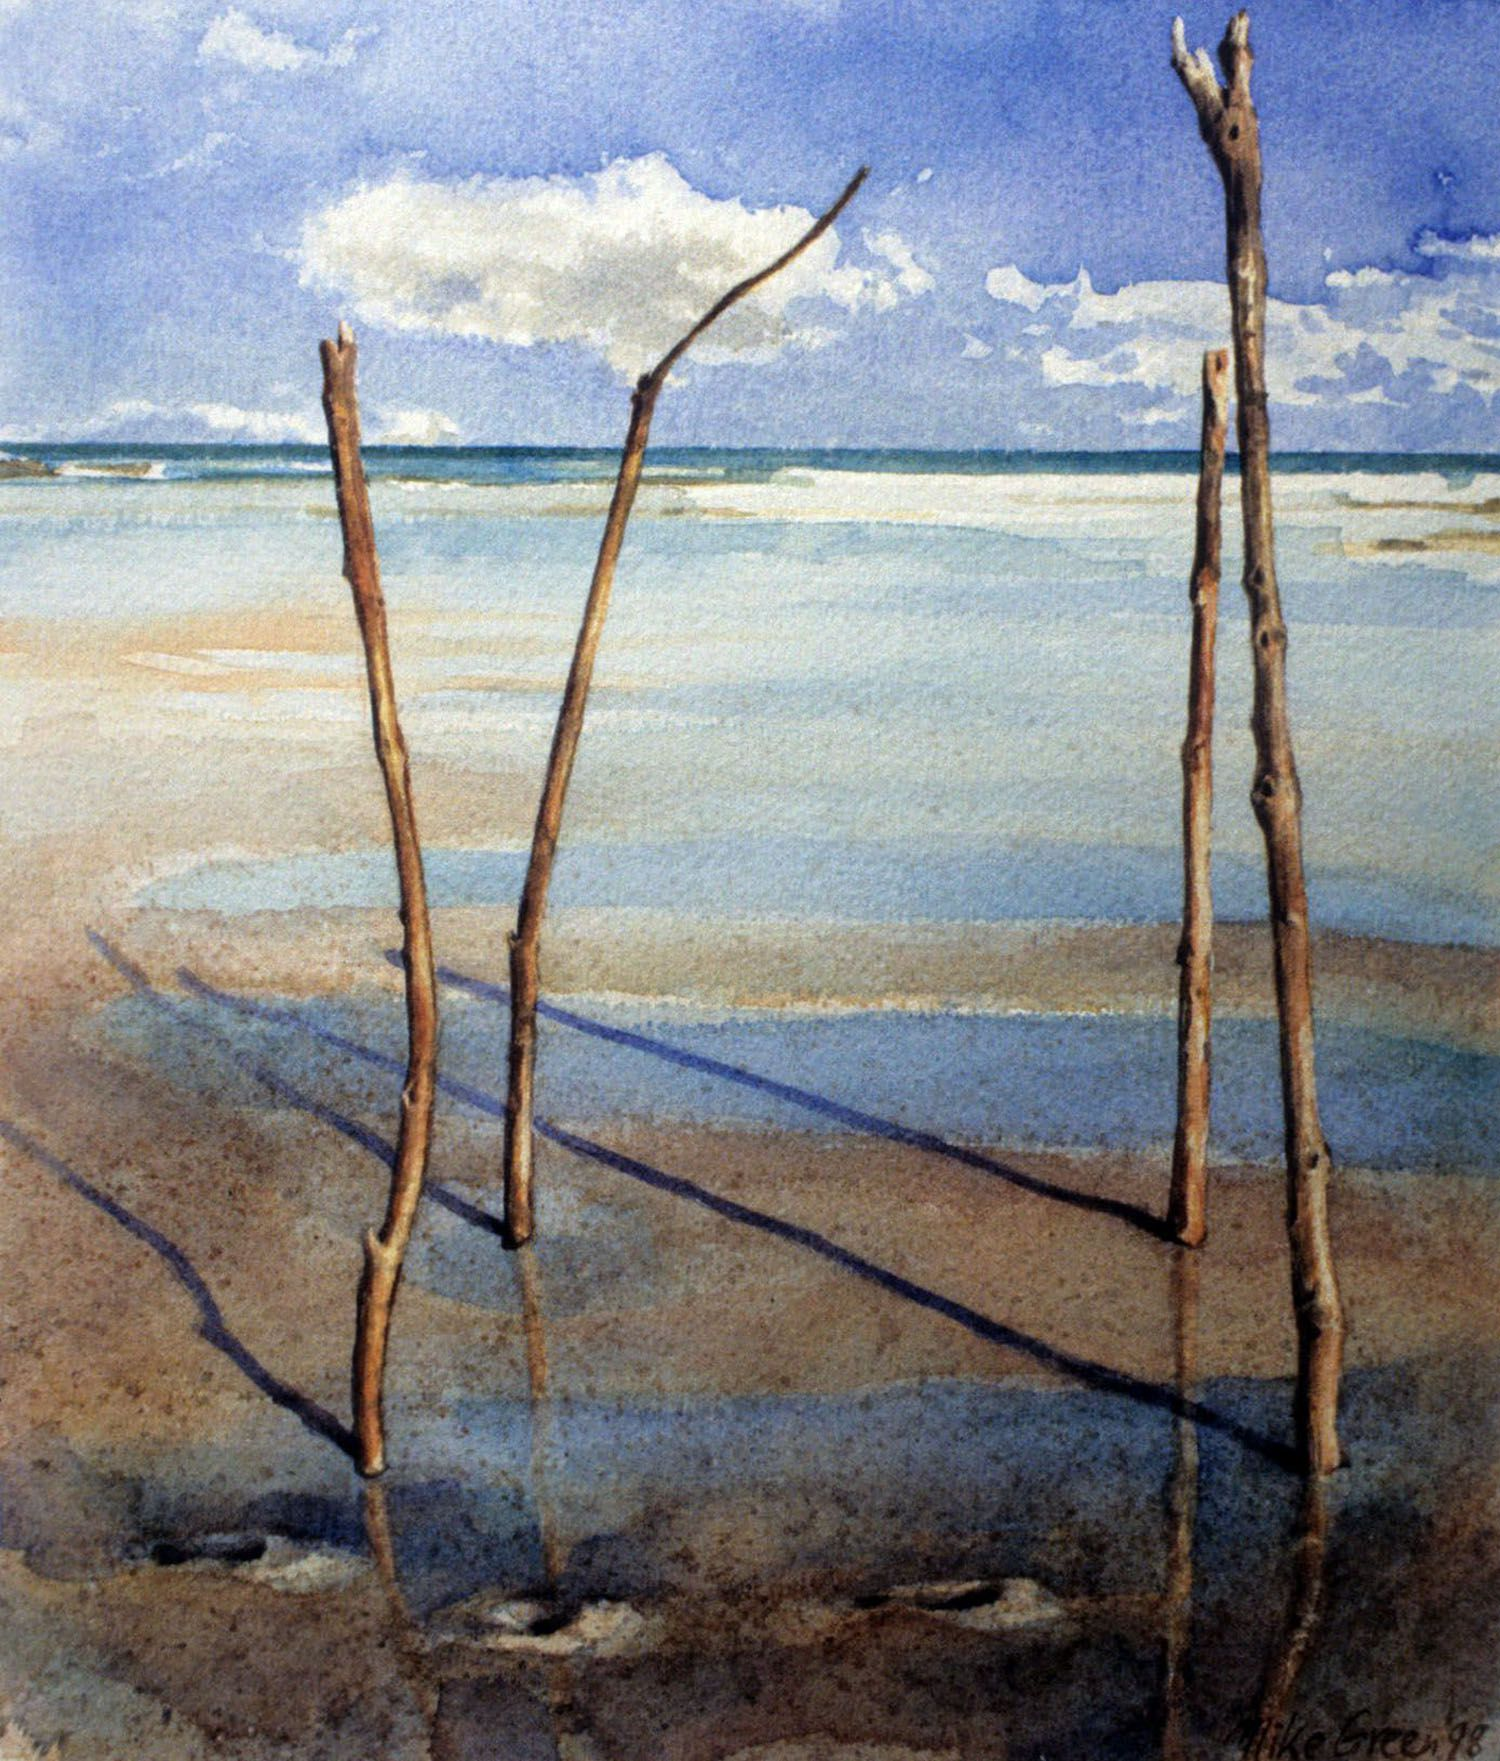 """""""The Claim"""" ( sticks with ocean view) 1997. Watercolour on 300gms Arches paper.33 x 27cm"""